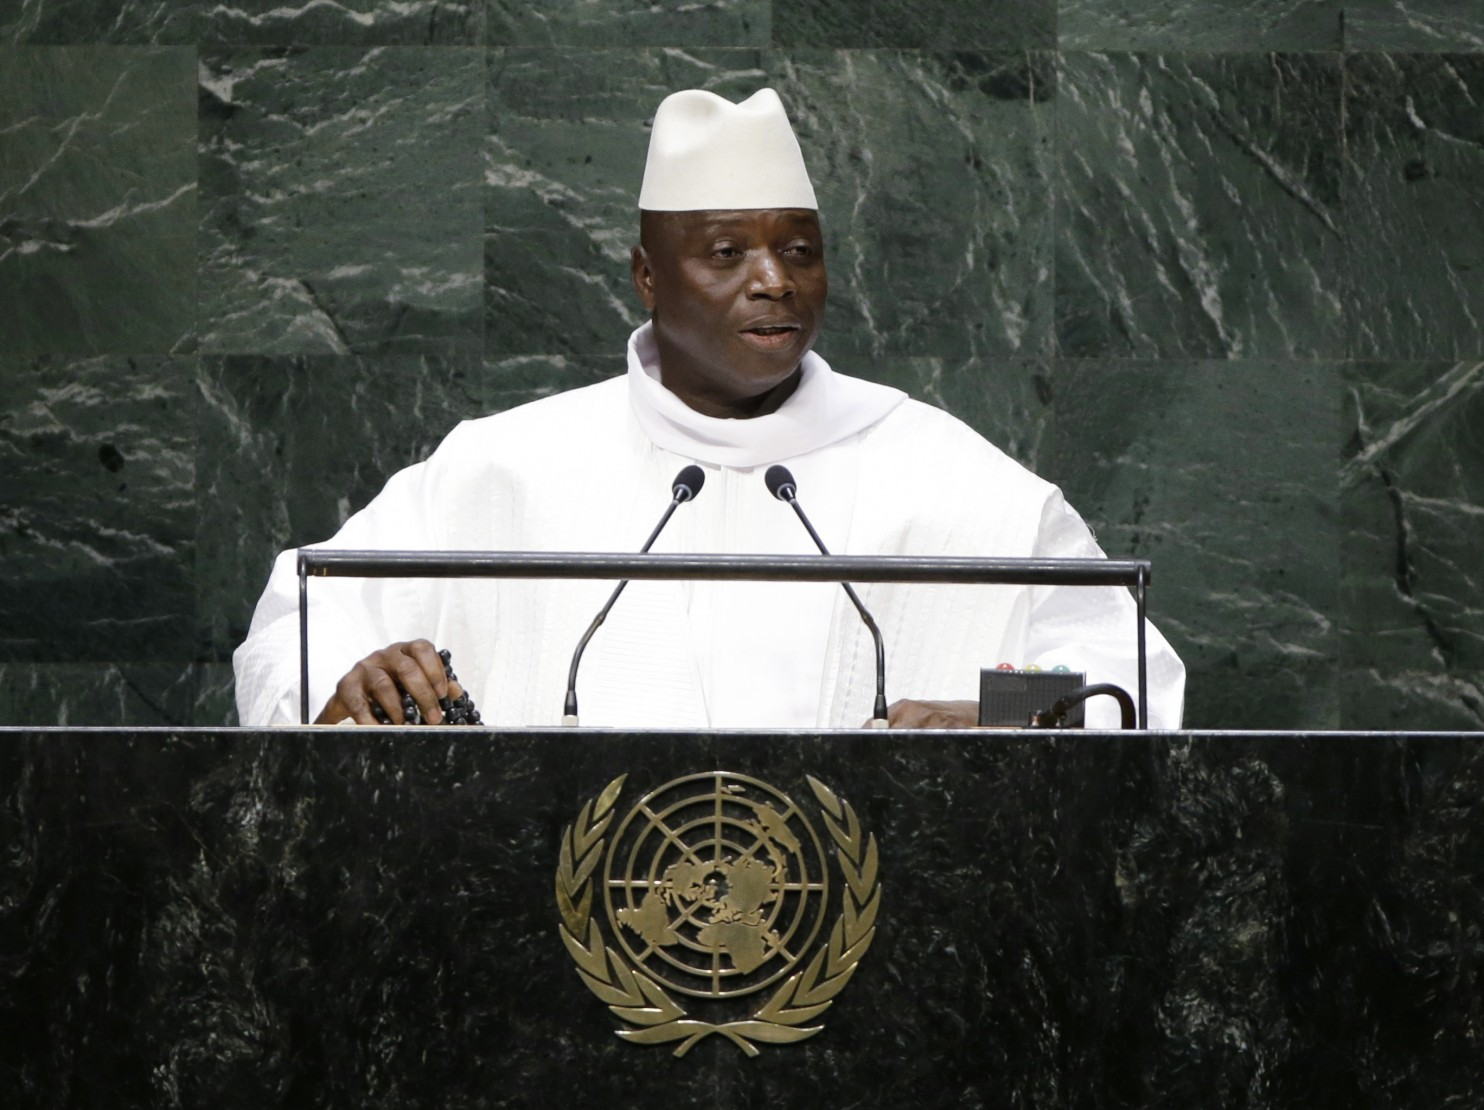 Gambian President Yahya Jammeh addresses the United Nations in 2014. Gamibia announced its plans to leave the International Criminal Court on Tuesday. (Frank Franklin II/AP)